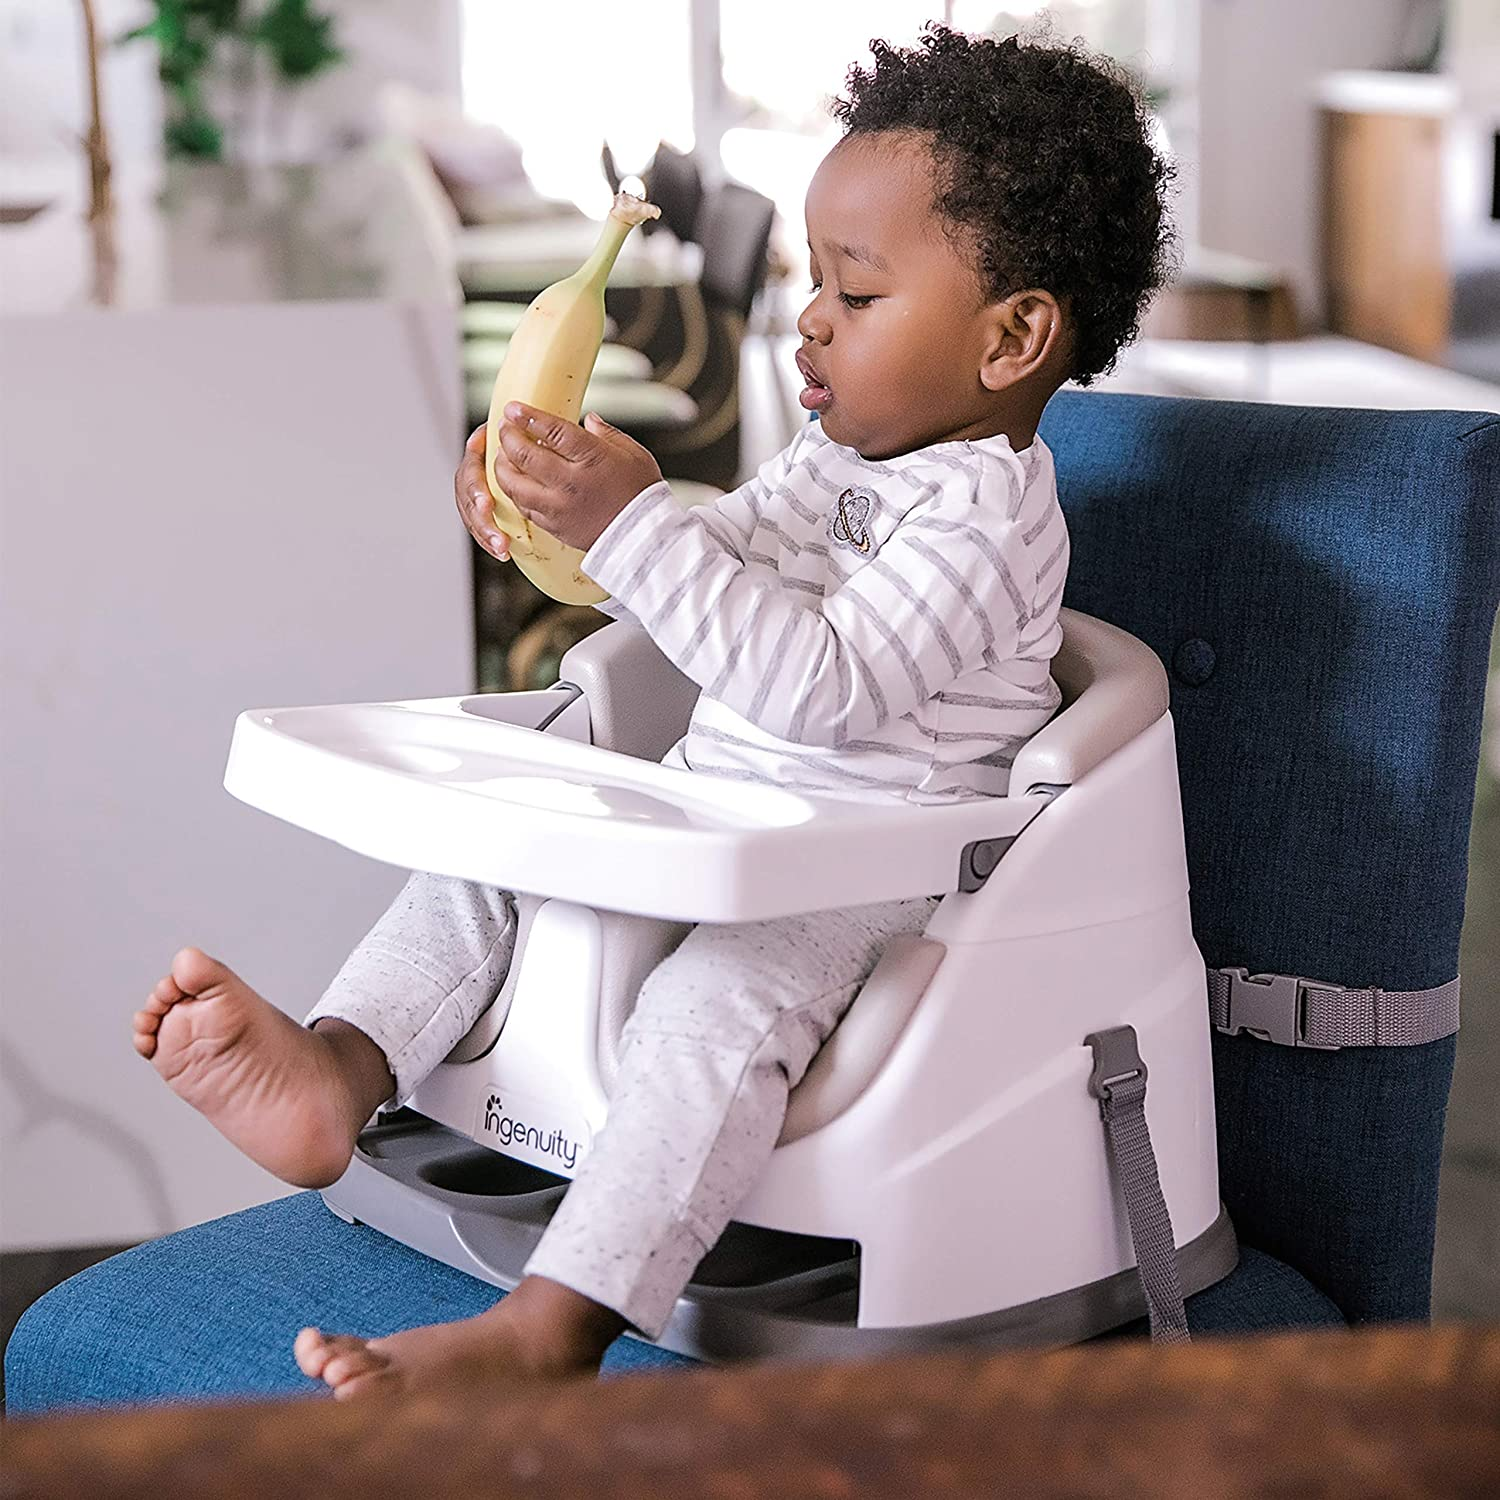 Baby Base 2-in-1 Si/ège Rehausseur pour Table Ingenuity Paon Bleu